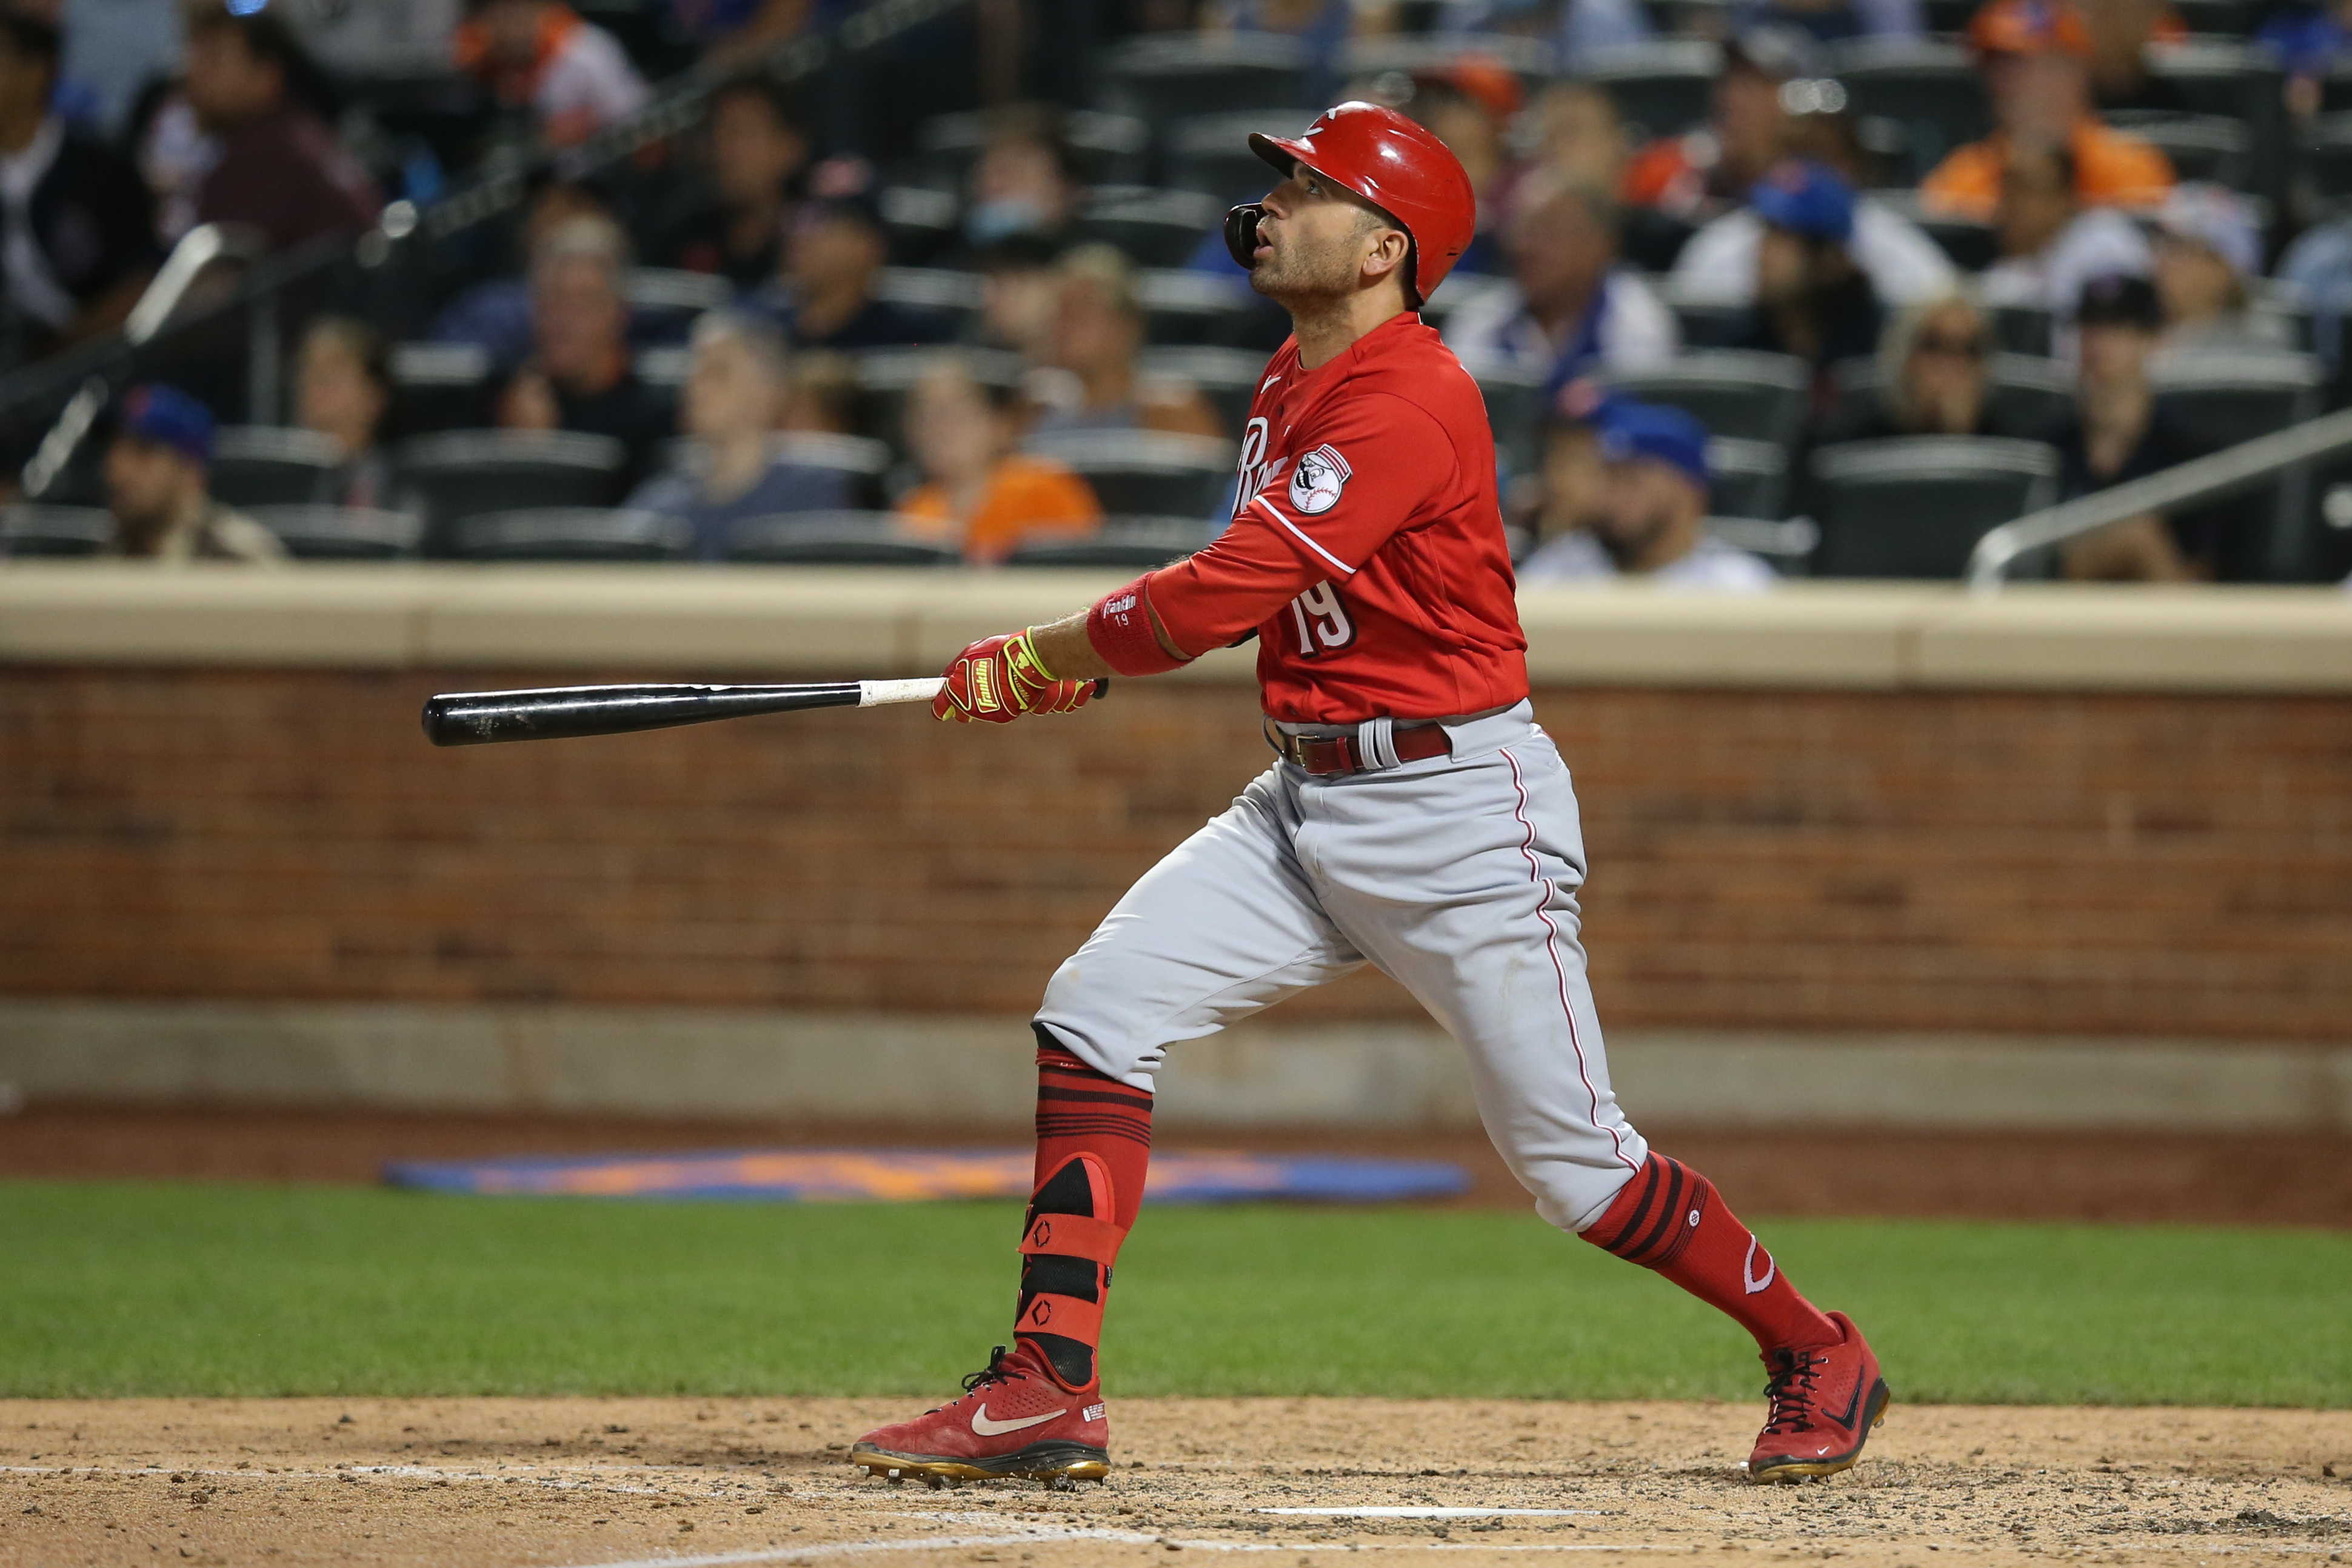 Jul 30, 2021; New York City, New York, USA; Cincinnati Reds first baseman Joey Votto (19) follows through on a solo home run against the New York Mets during the sixth inning at Citi Field. Mandatory Credit: Brad Penner-USA TODAY Sports